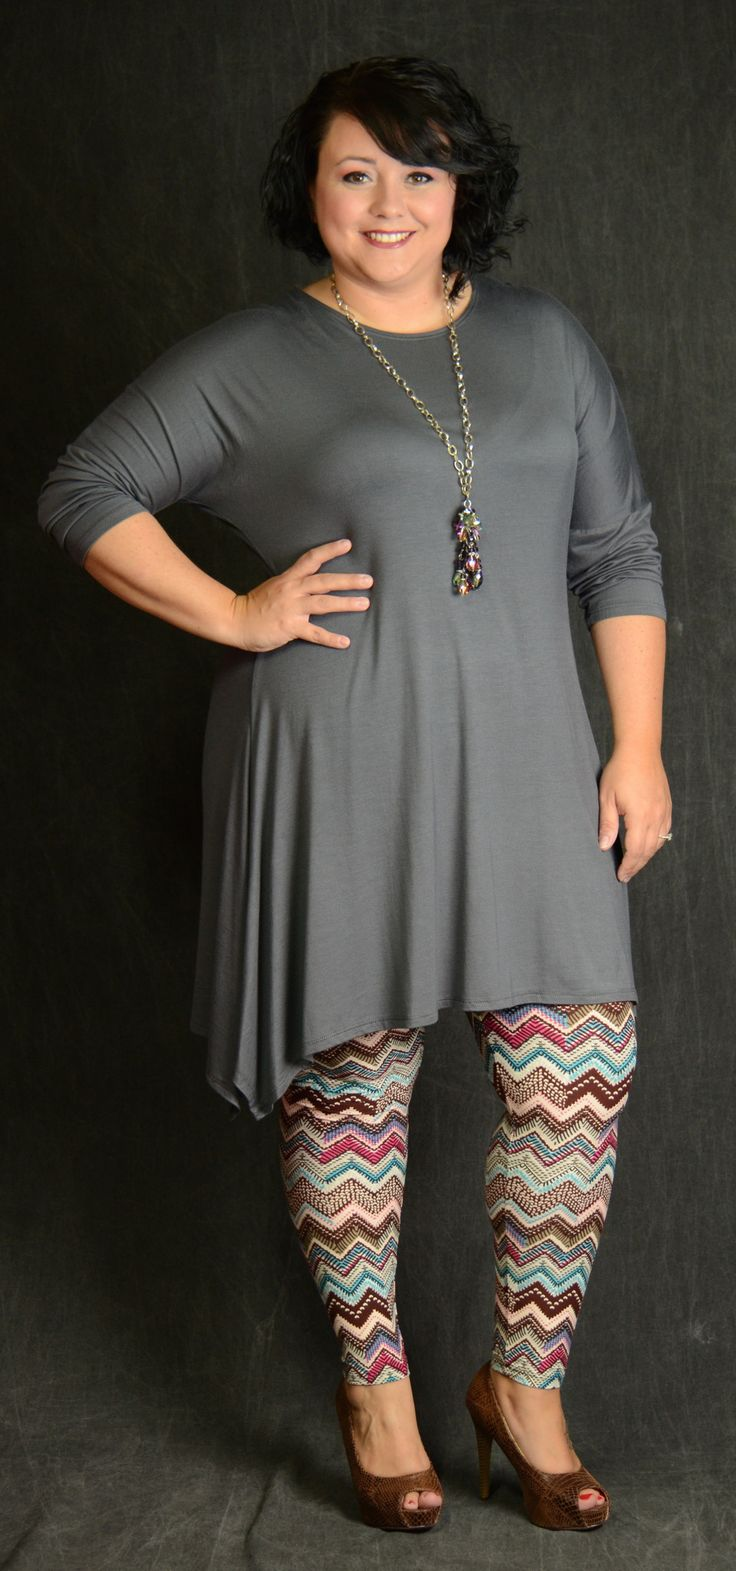 Chevron Aztec Geometric Print One Size PLUS Looks great with long tunics & boots!! 65% Polyester 35% Cotton Shown with Charcoal Loose Fit Dress but many colors will work!